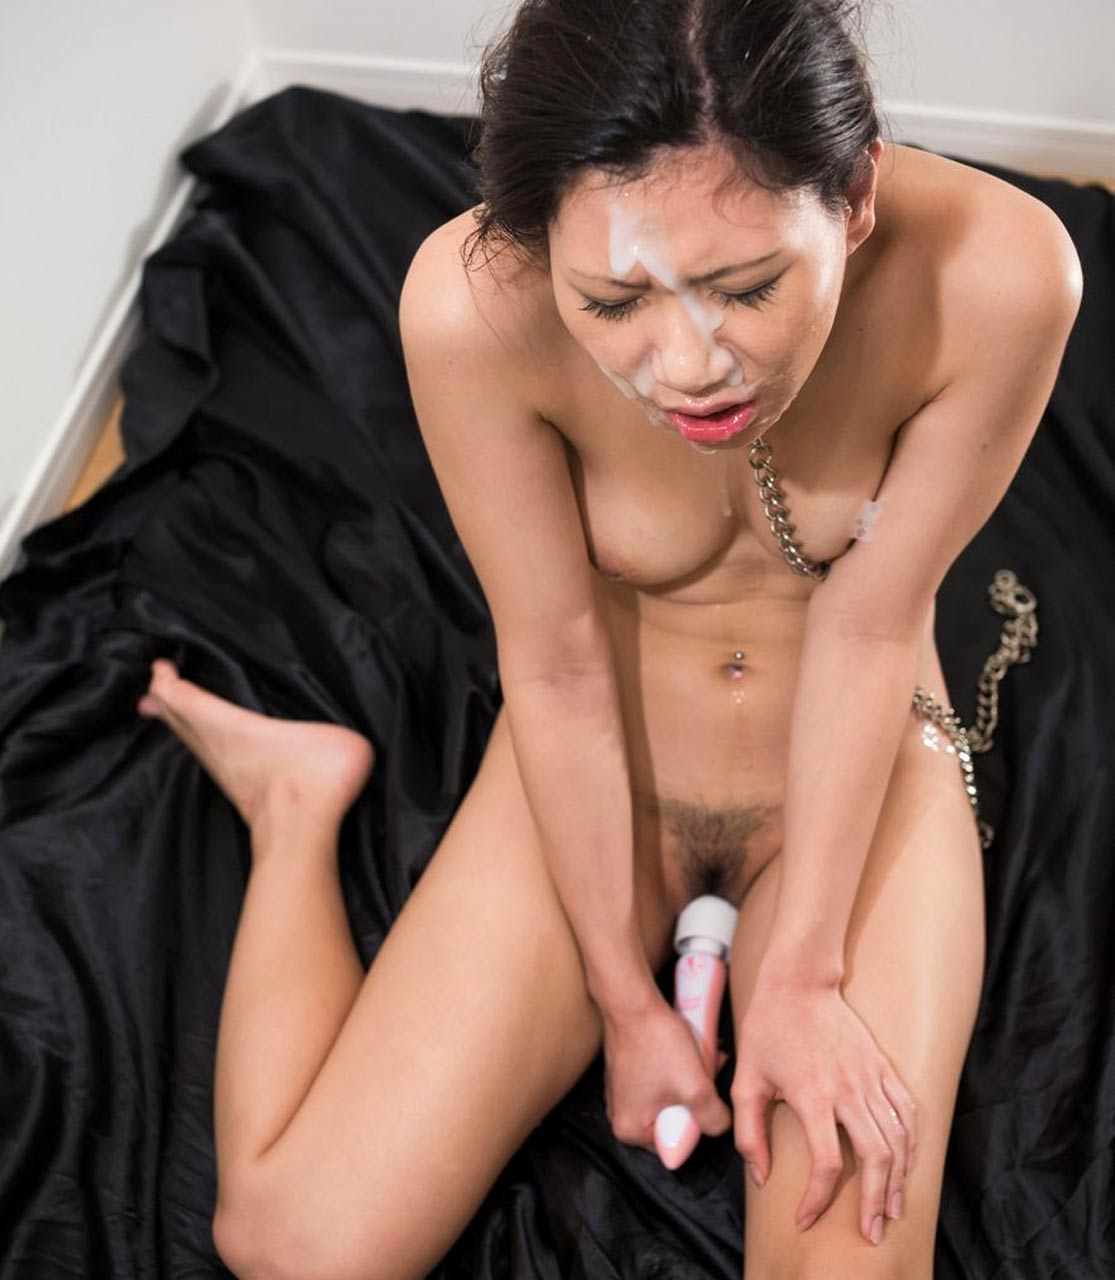 Aiku Kisaragi, nude, masturbates after being facefucked with cum on her face at Tokyo Face Fuck. Uncensored BDSM facial sex.